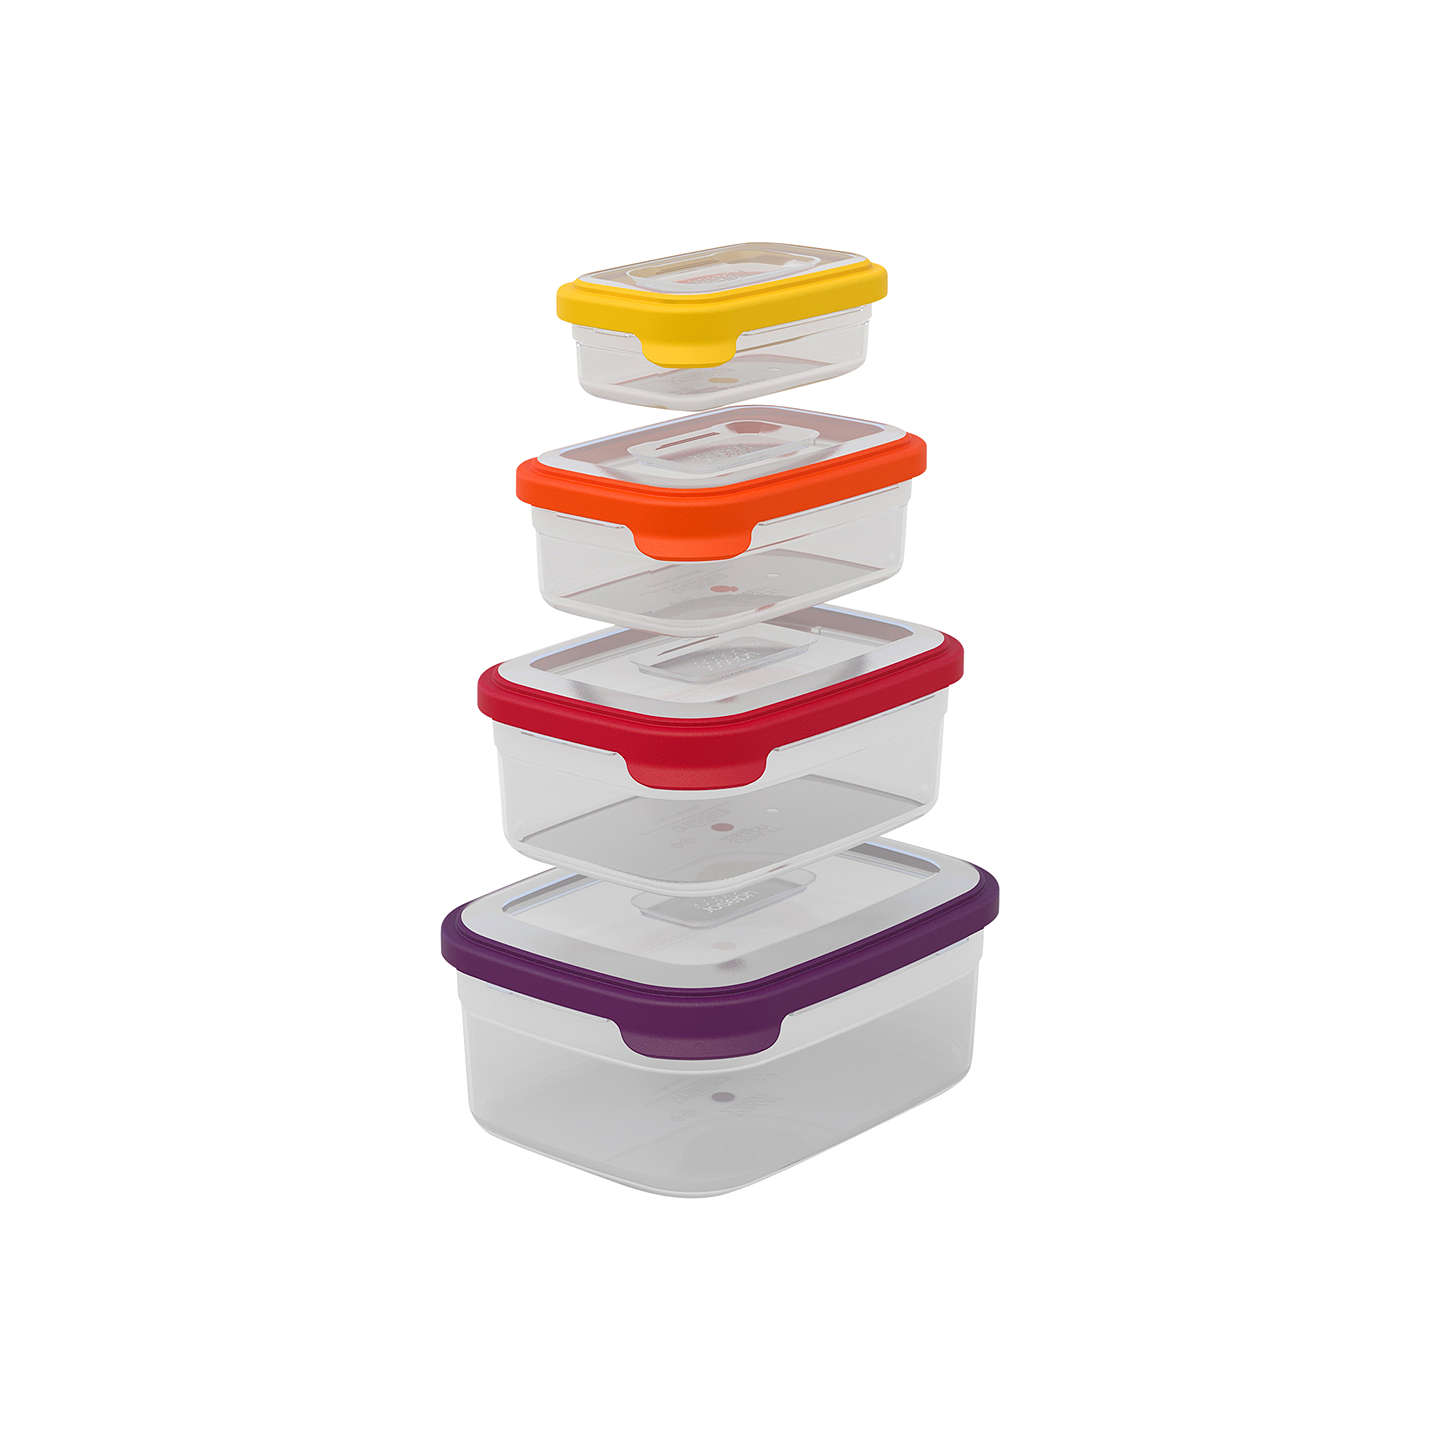 BuyJoseph Joseph Nested Storage Containers, Set of 4 Online at johnlewis.com